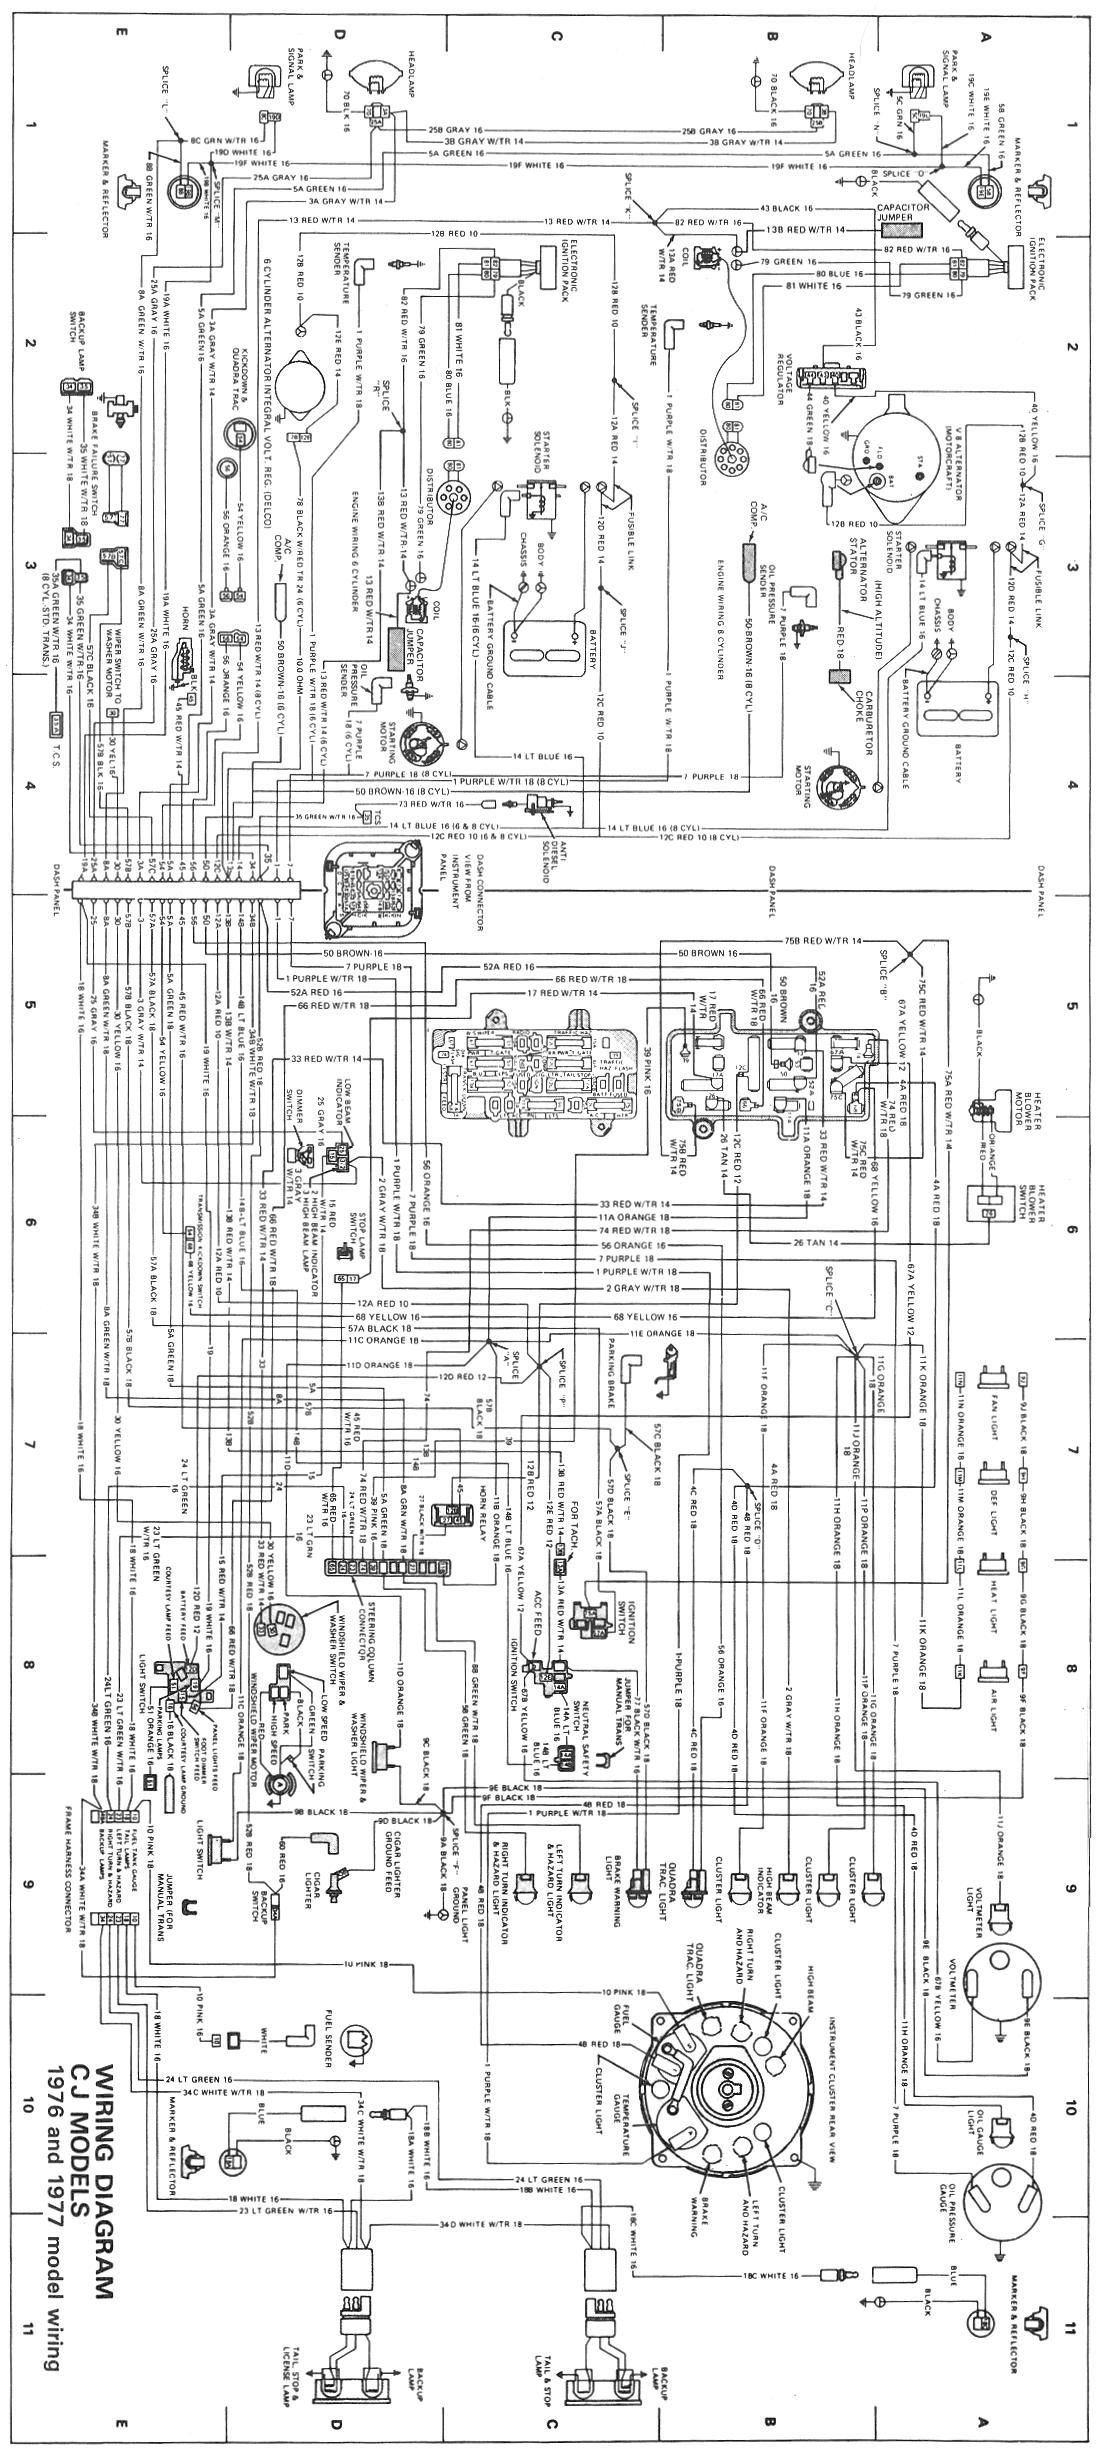 jeep wiring diagrams 1976 and 1977 cj jeep wiring pinterest 1974 jeep cj5 wiring diagram jeep cj5 wiring schematic [ 1100 x 2459 Pixel ]